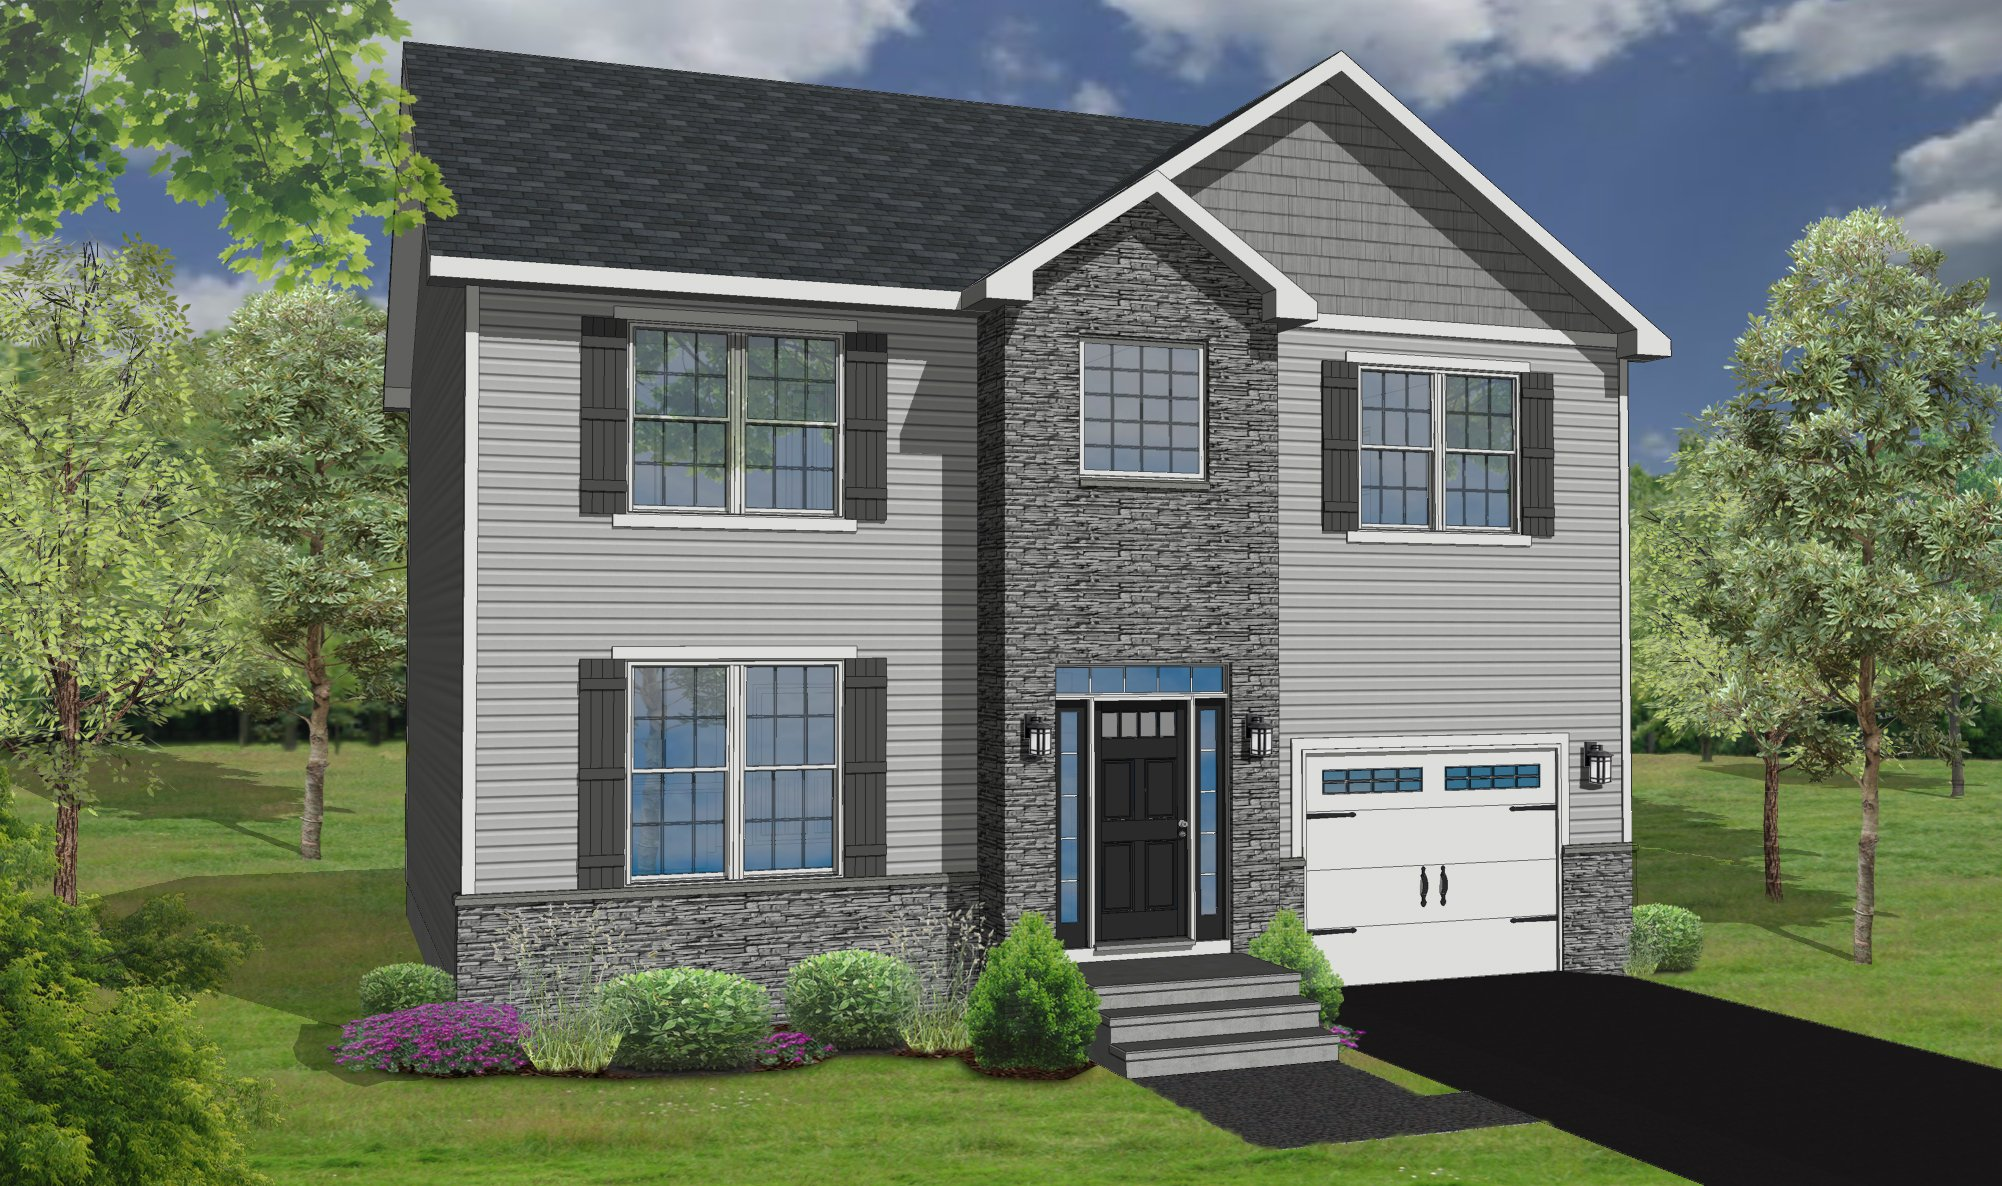 The April Home Model Rendering